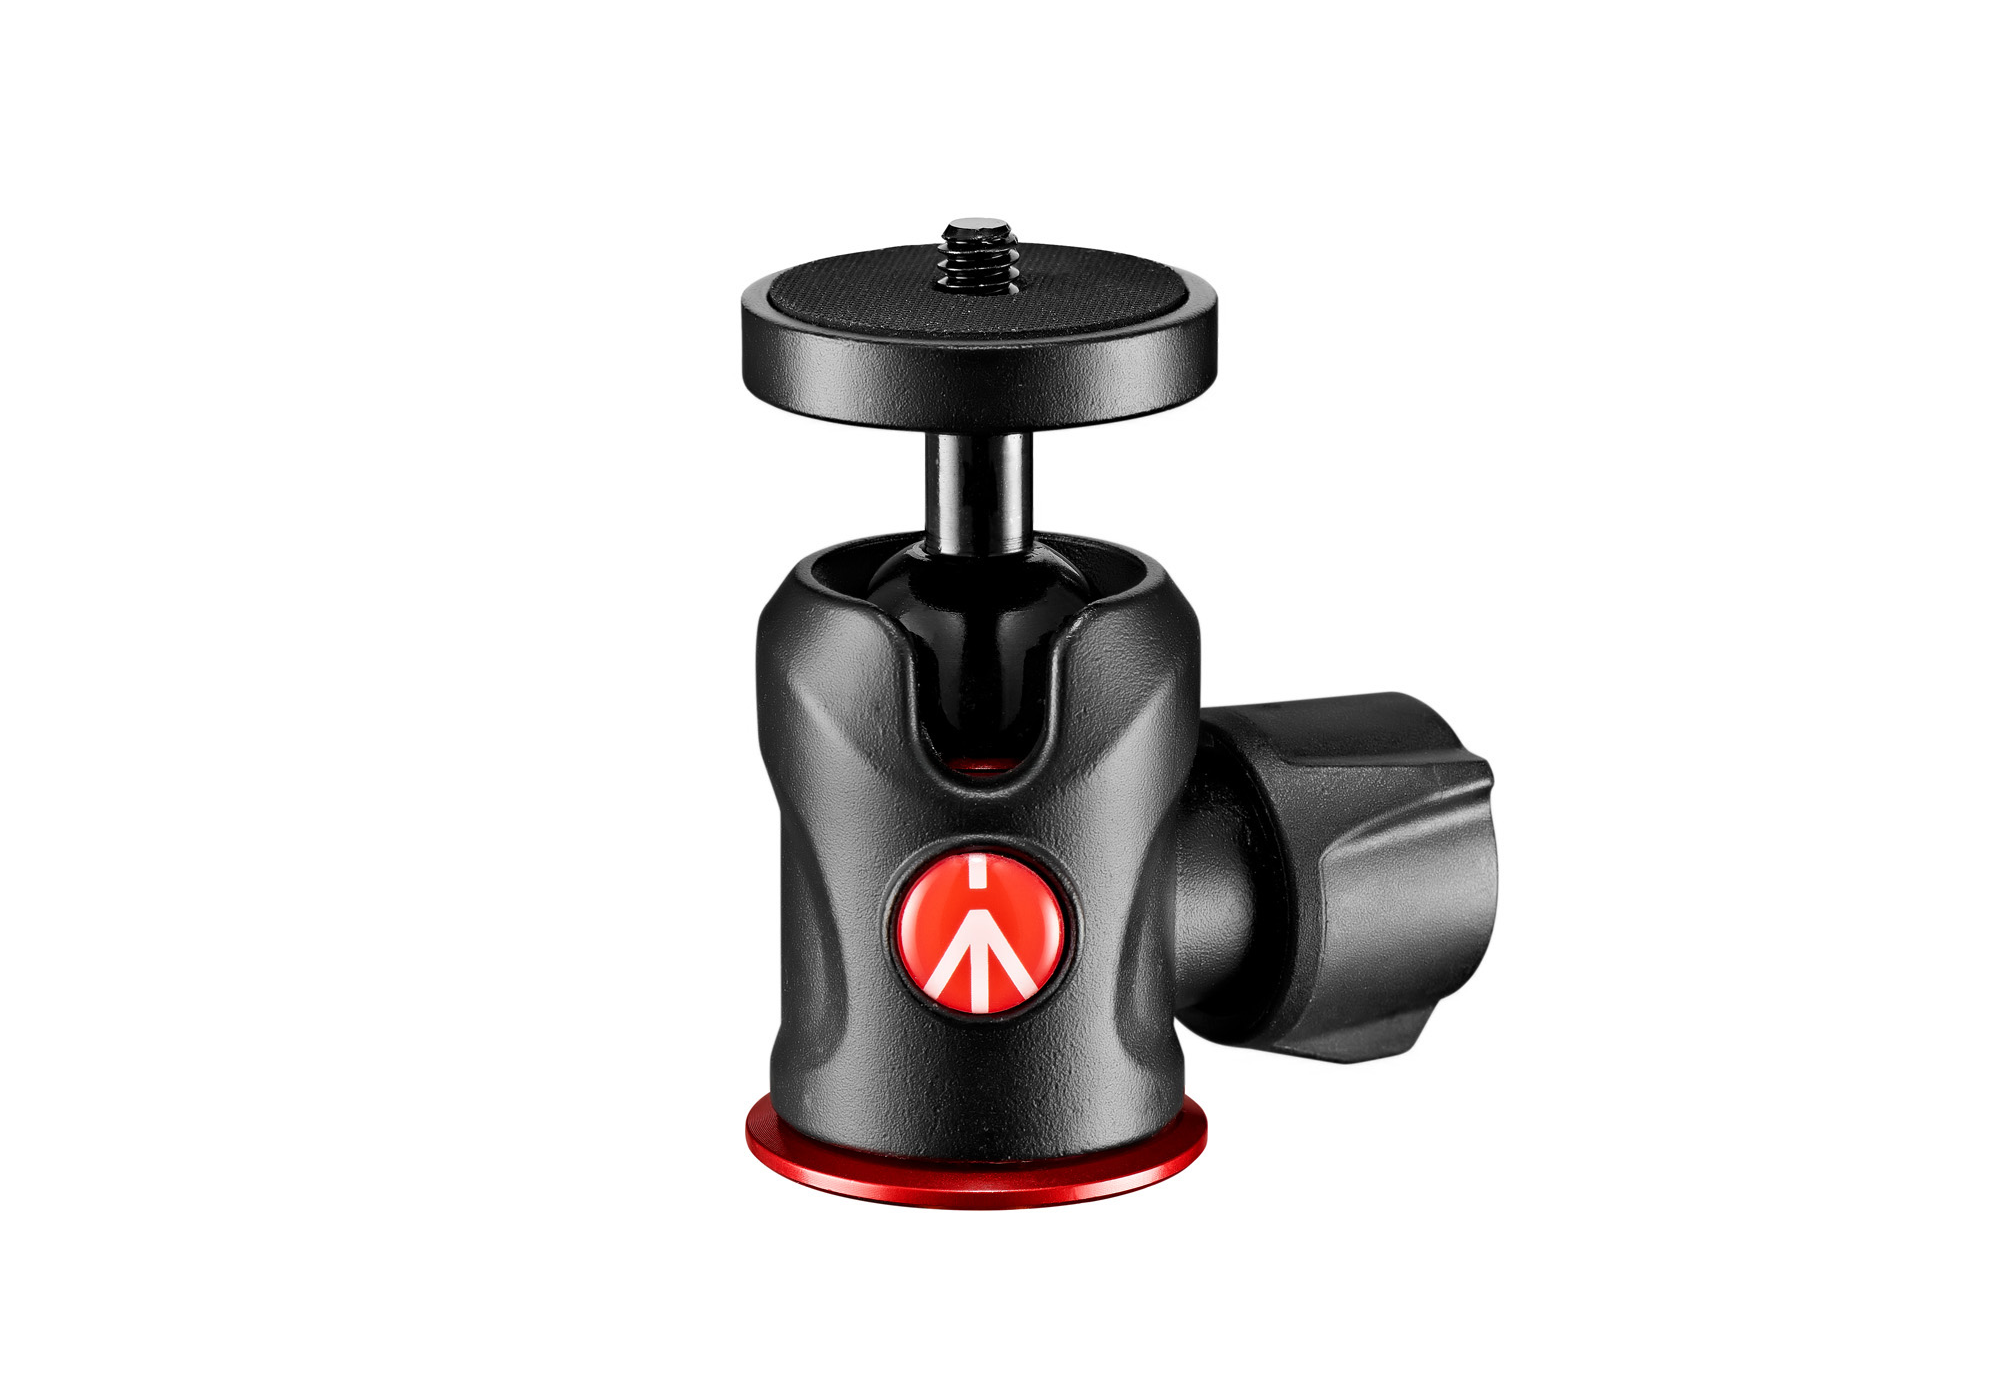 Manfrotto 492 Centre Ball Head